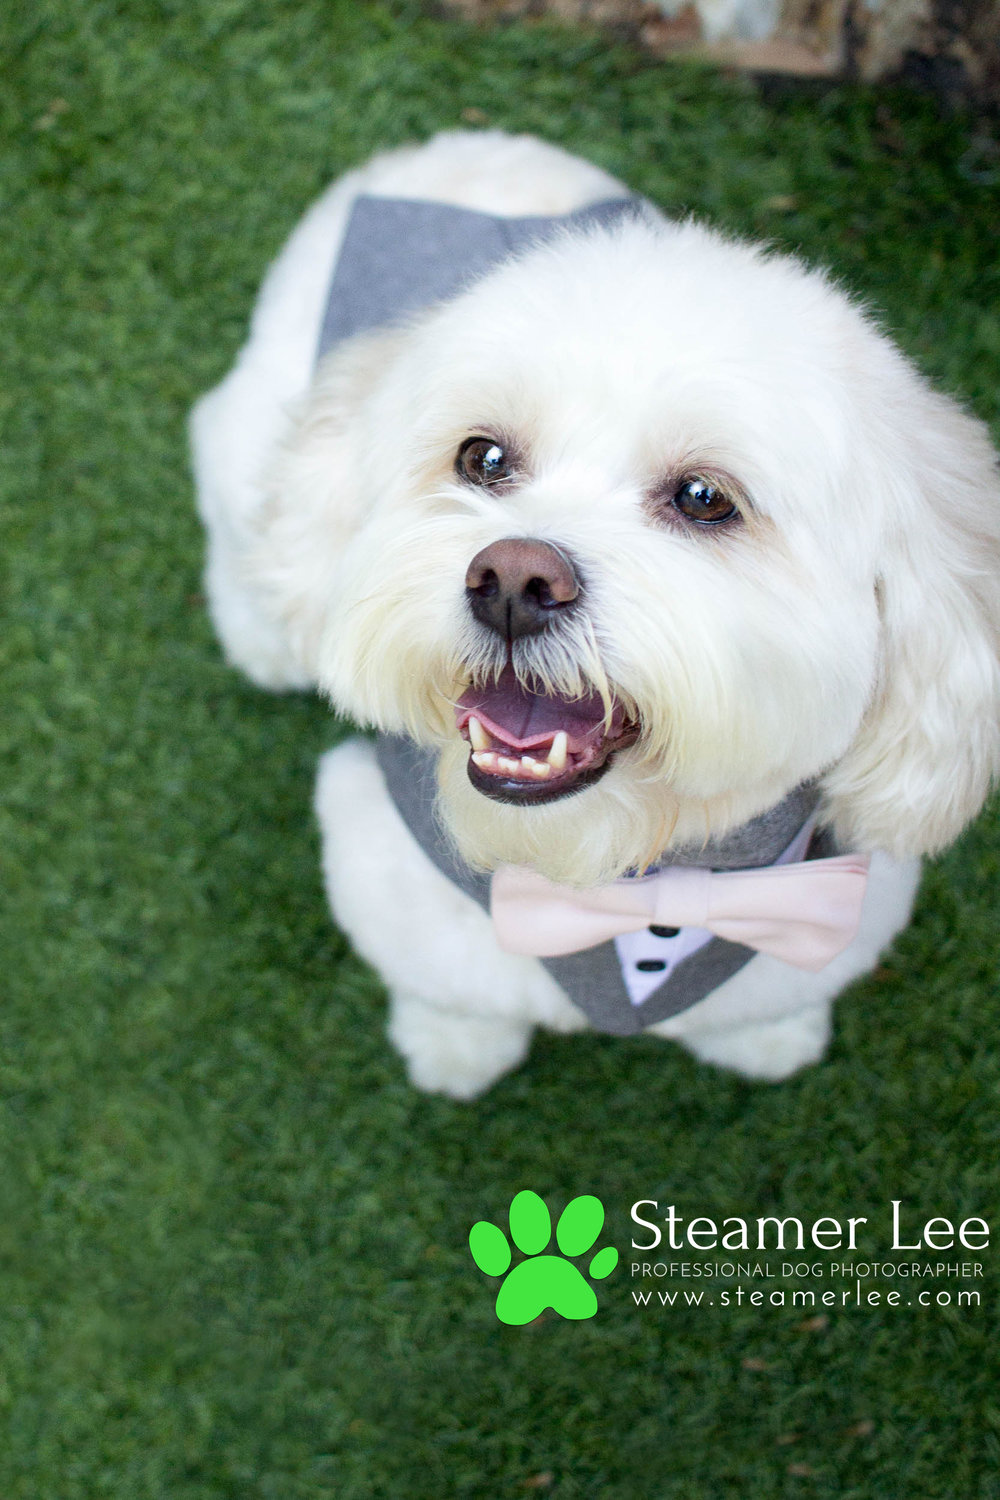 Steamer Lee - Dog Photography - Shihpoo - Charly - 6.jpg